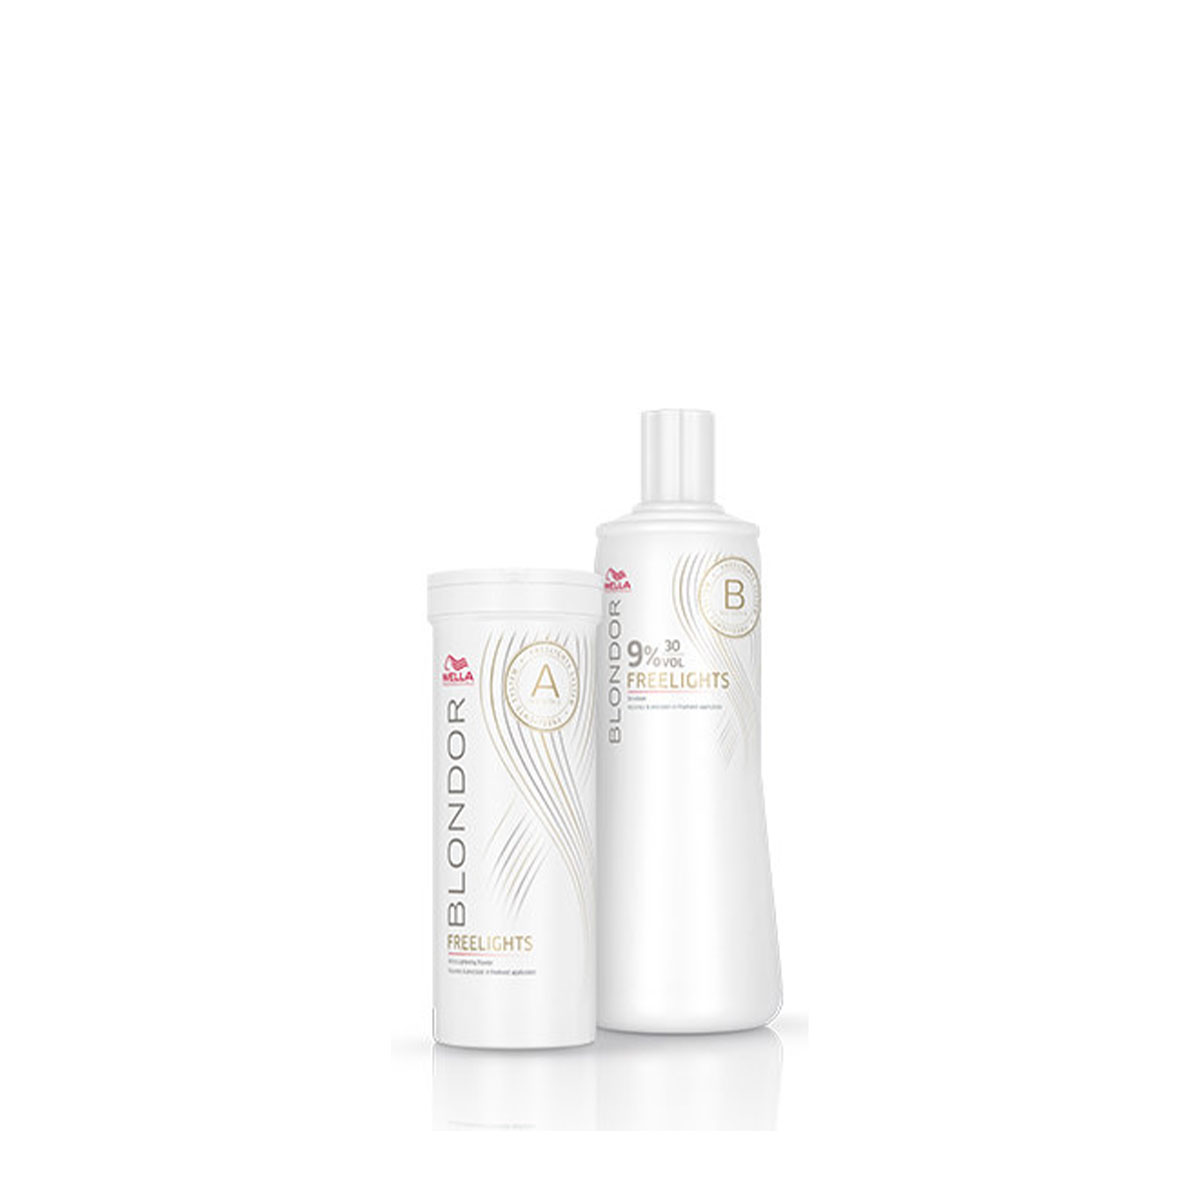 Blondor Freelights System 400g